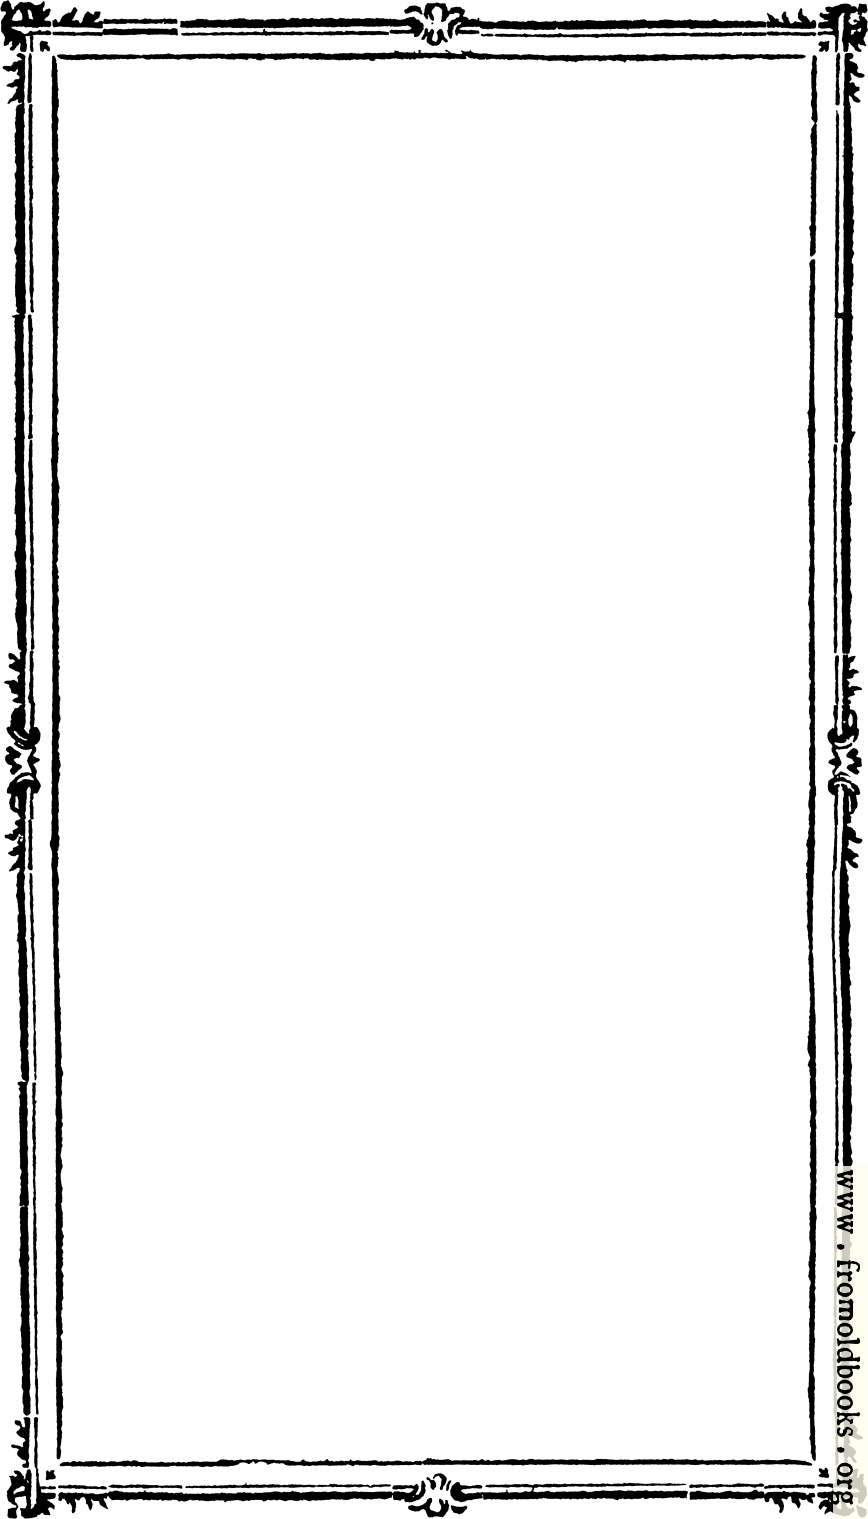 free clip art eighteenth century border from figures pour les missels rh fromoldbooks org Autumn Border Clip Art Black Frame Clip Art